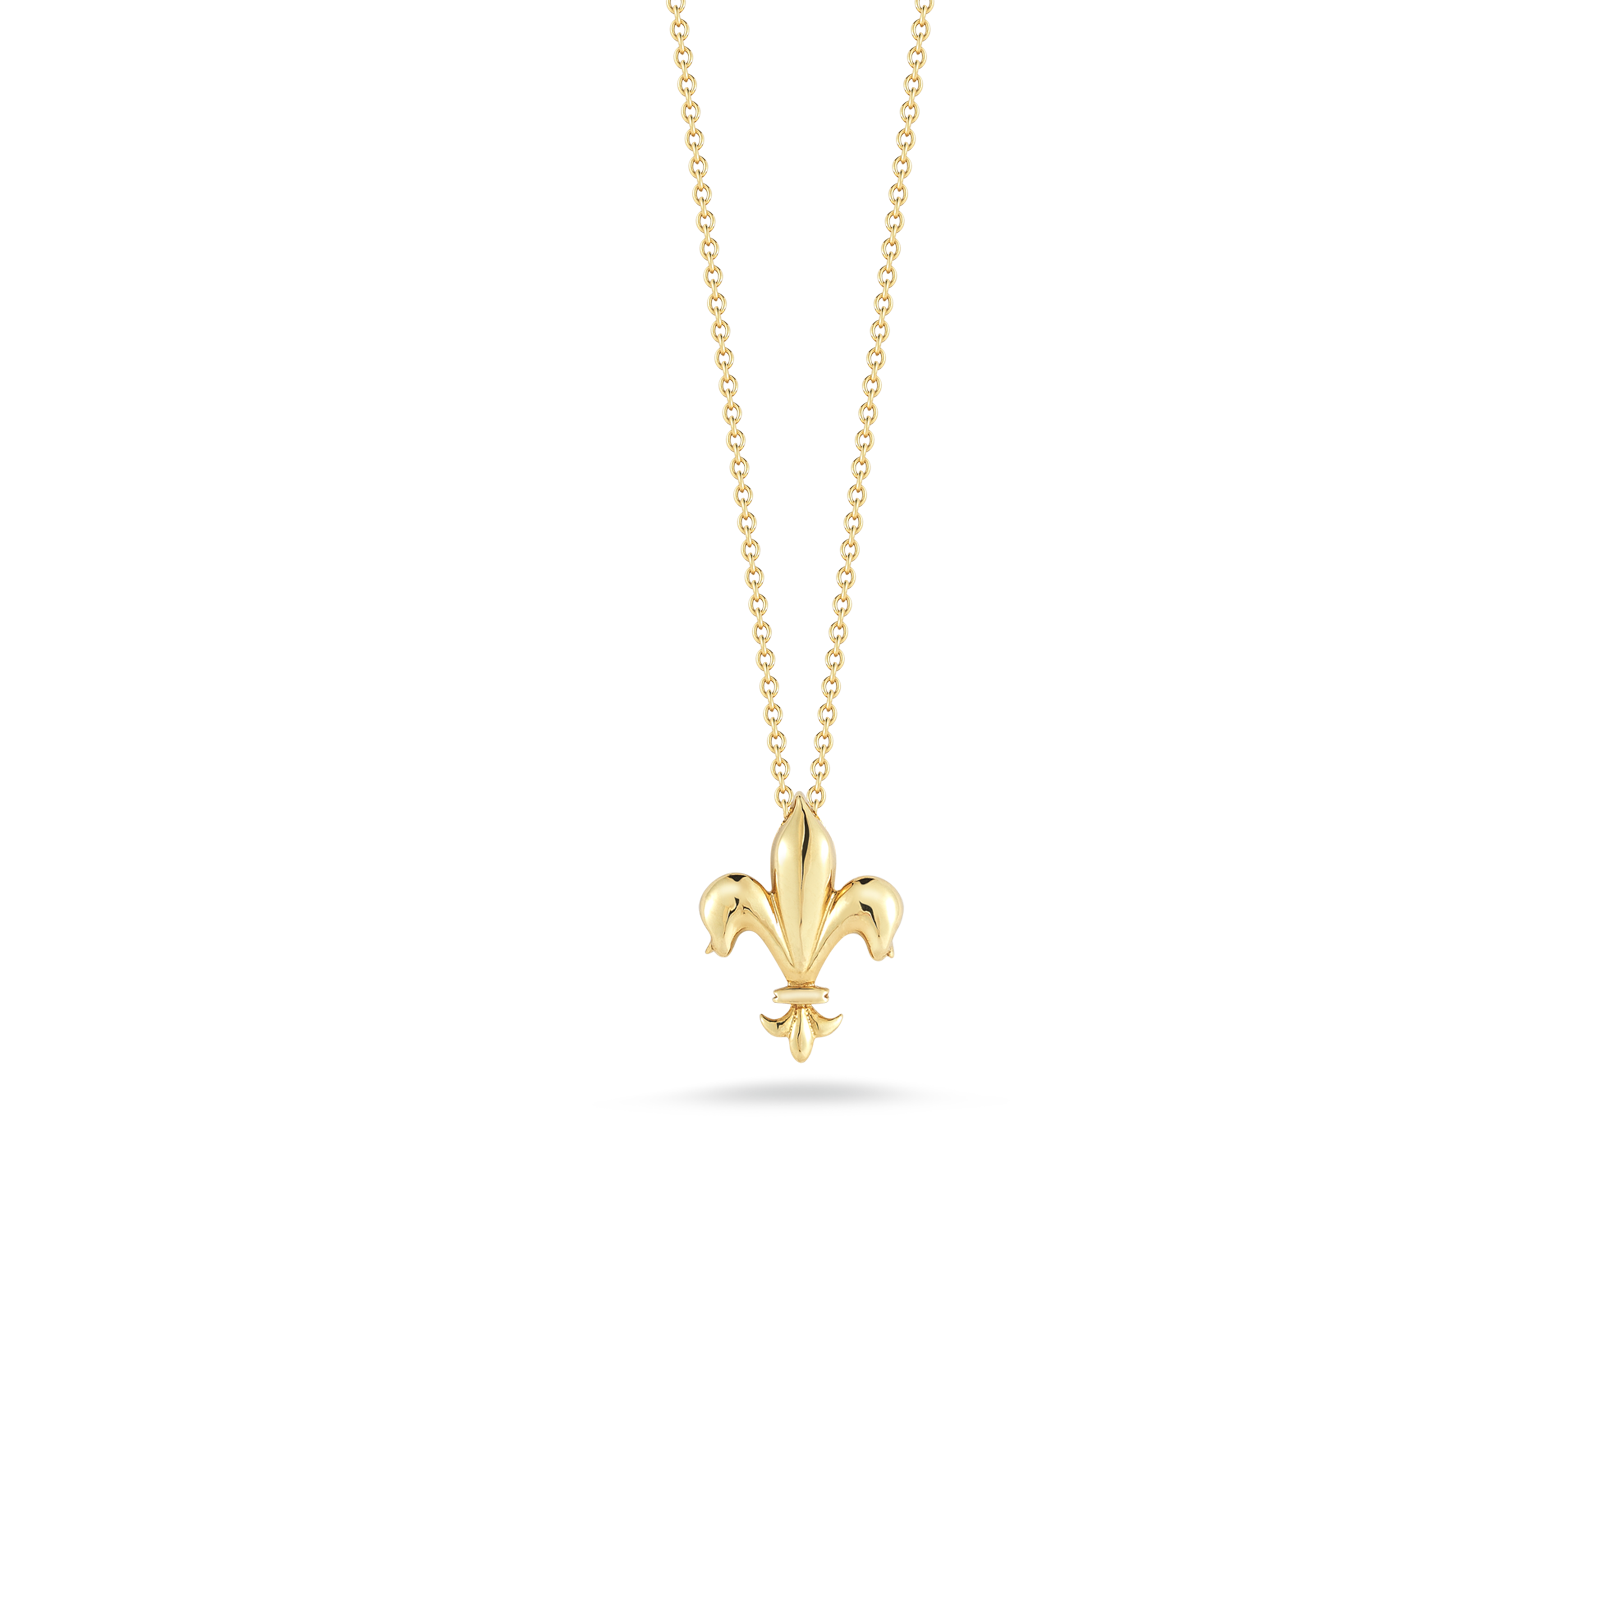 product wholesale plated dubai necklace new bridal party gift brand small classic gold crystal jewelry wedding pendant fashion crown women white